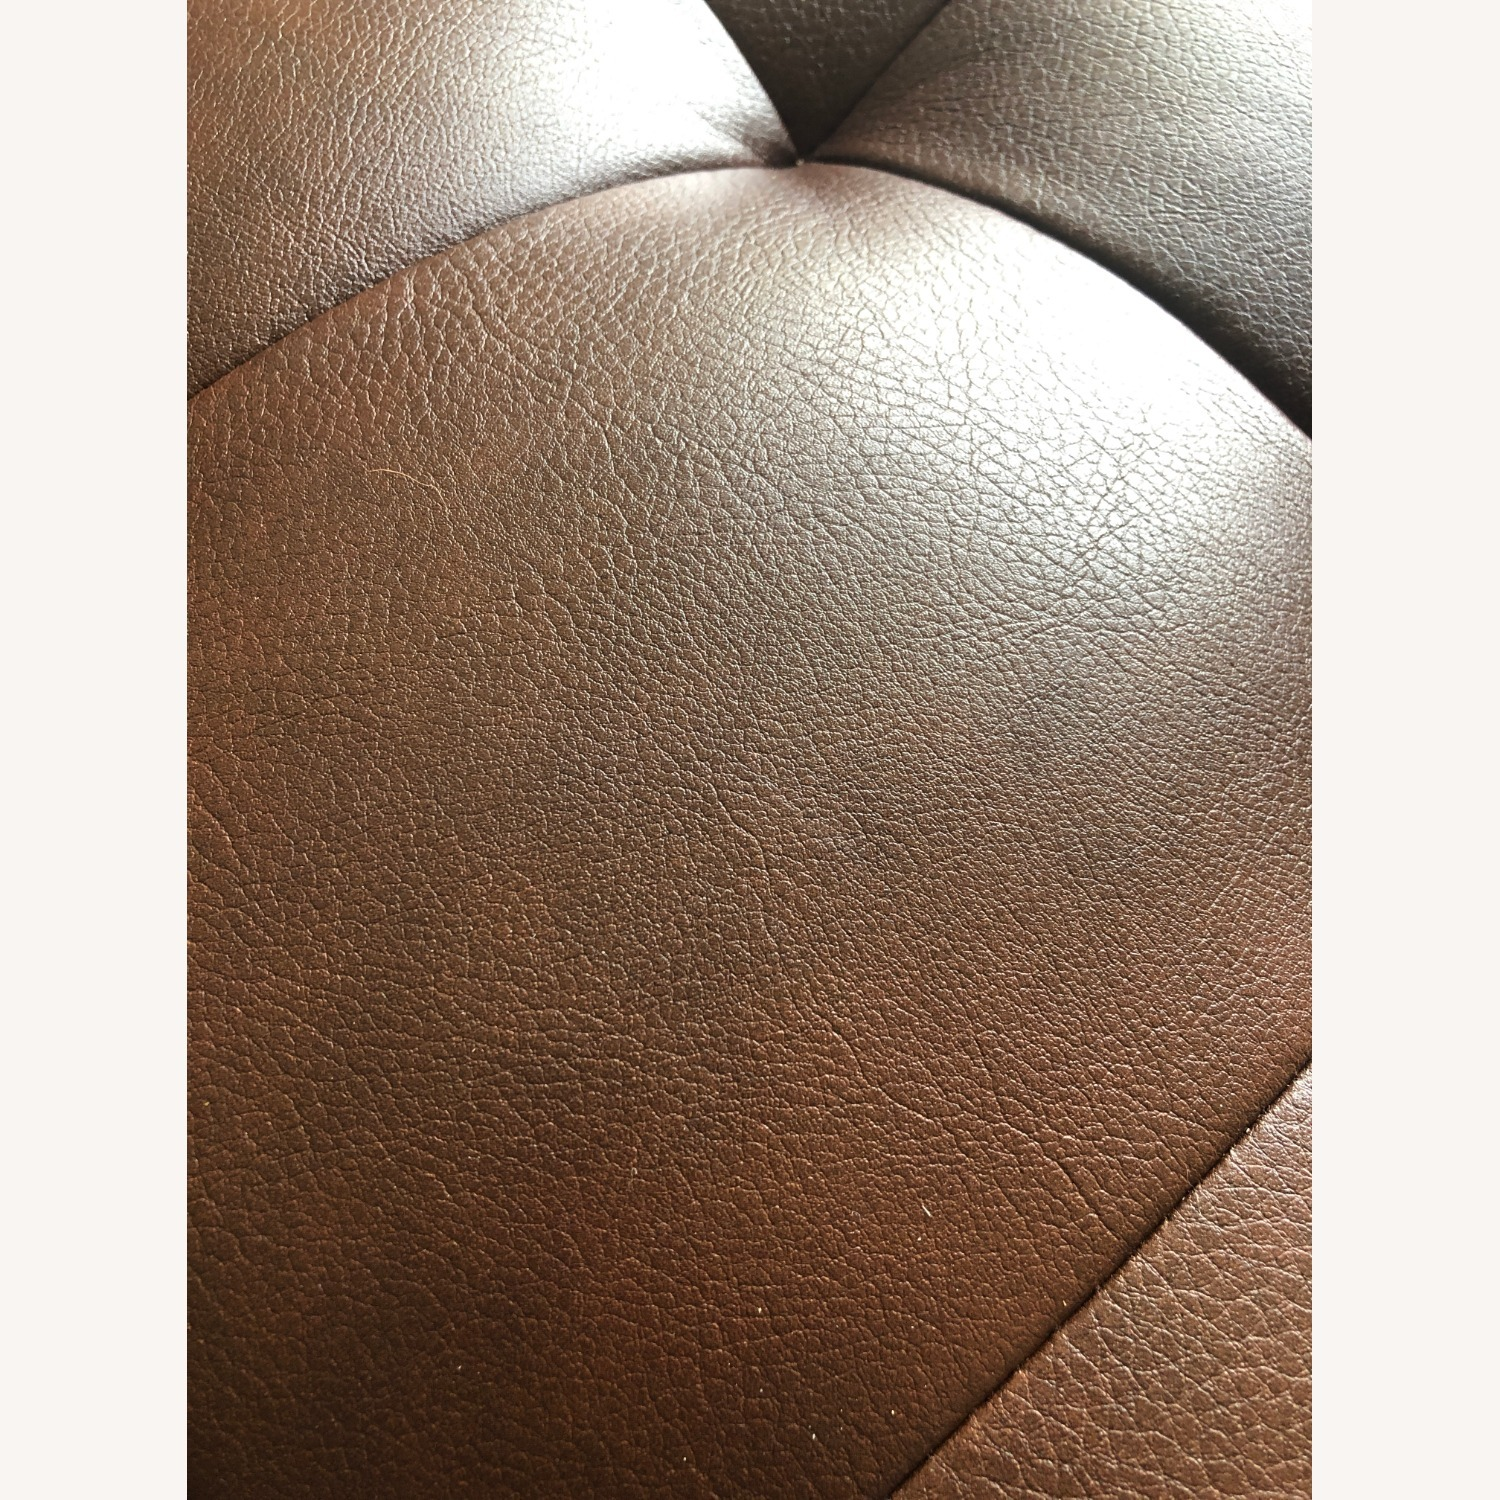 Raymour & Flanigan Leather Chaise and Ottoman - image-5